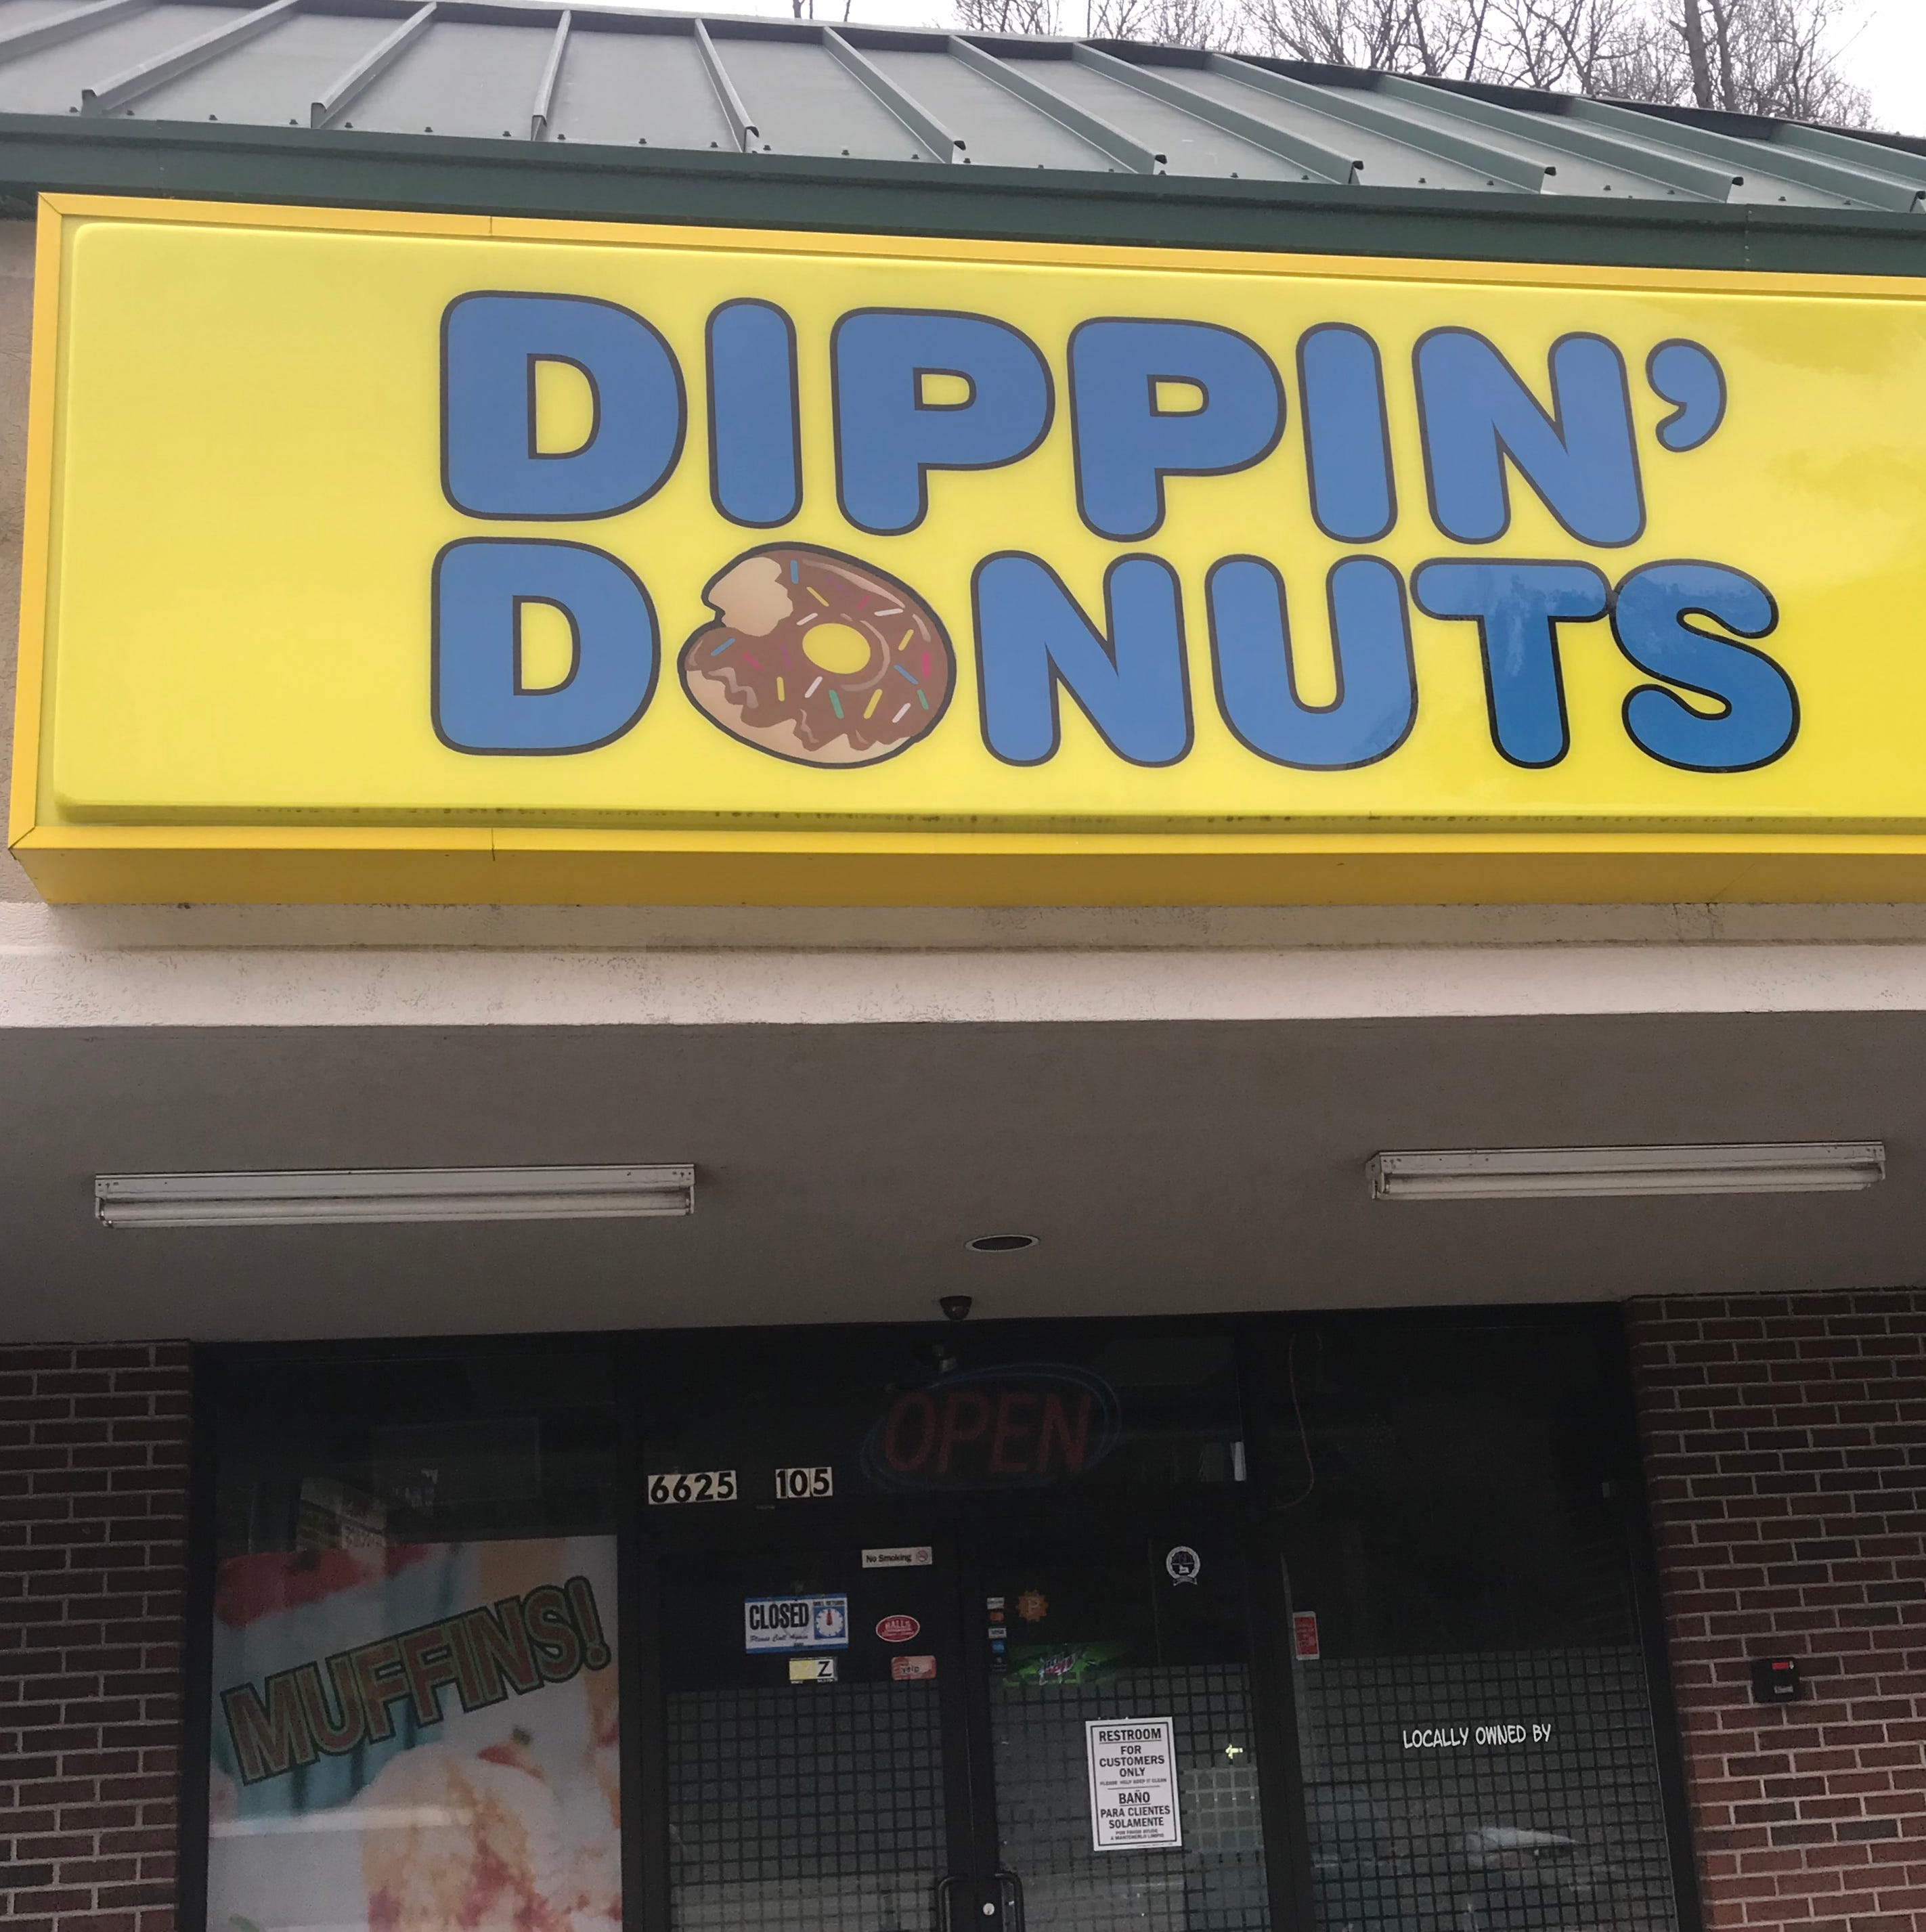 Dippin' Donuts, which moved from West Hills to Halls, 'permanently' closes